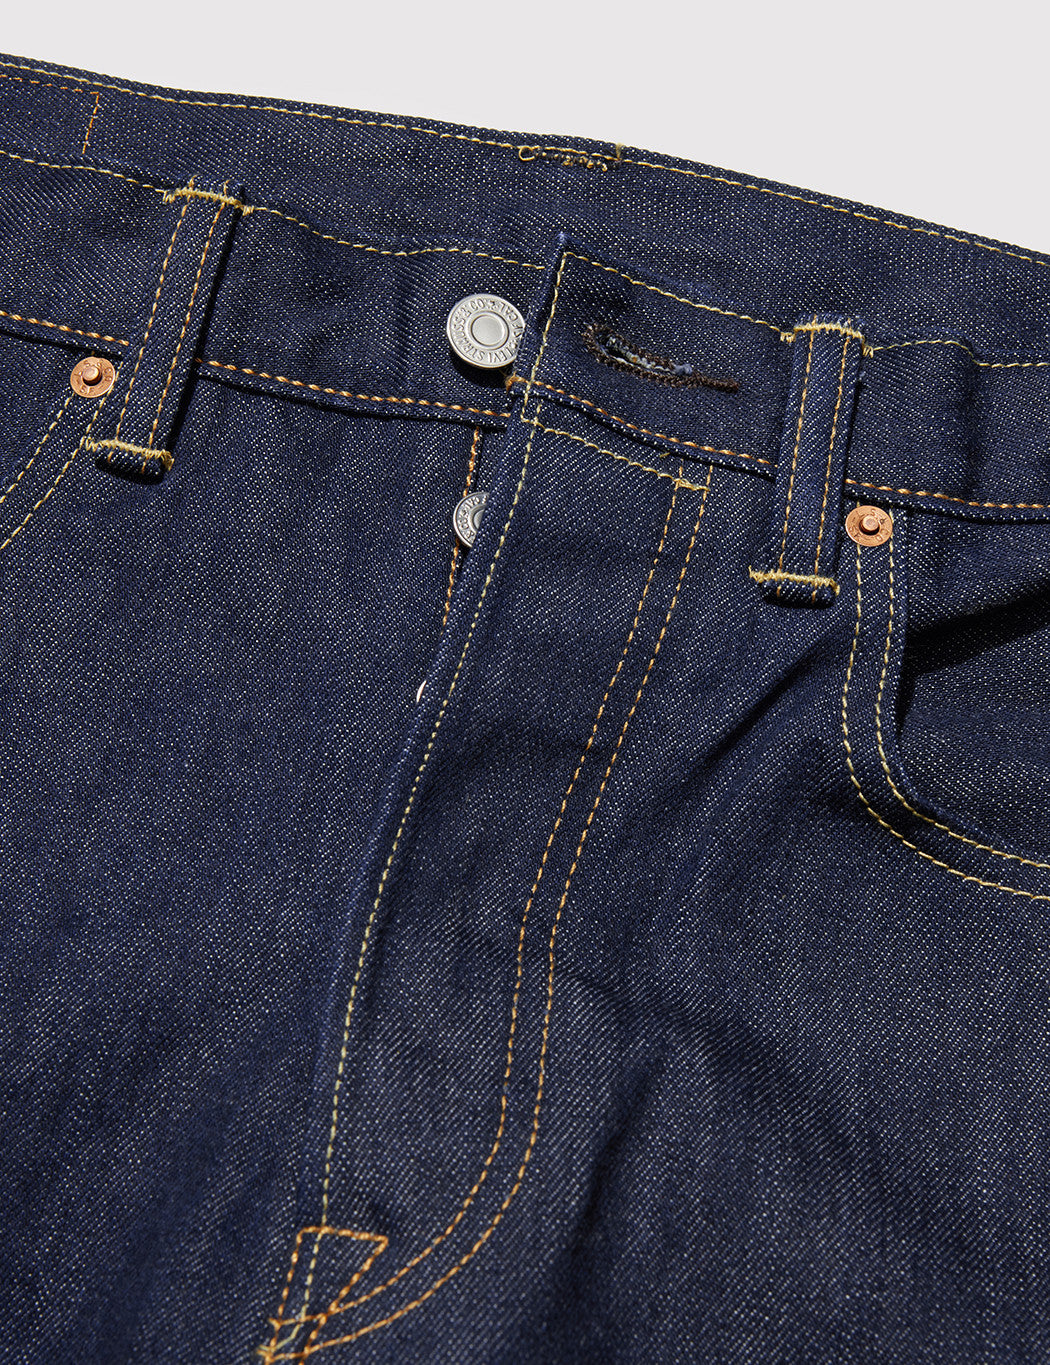 Levis 501 CT Customised Tapered Jeans - Celebration